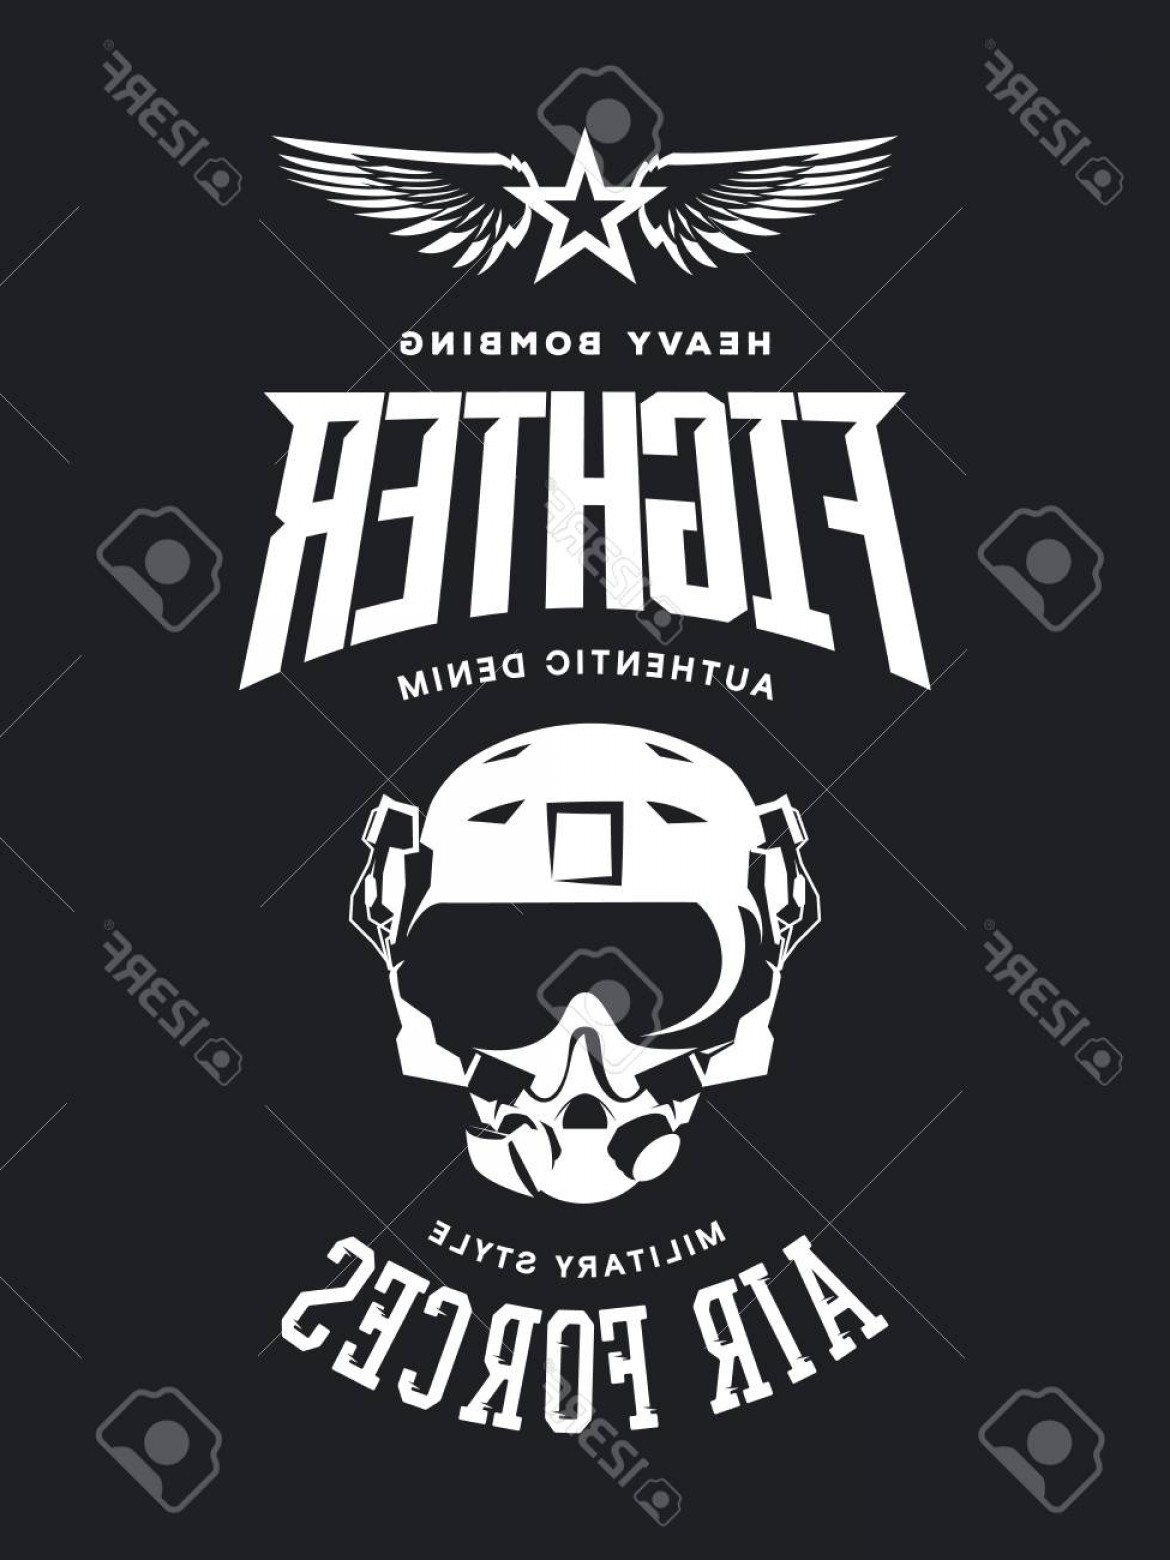 Fighter Helmet Vectors: Photostock Vector Vintage Fighter Pilot Helmet Vector Logo Isolated On Dark Background